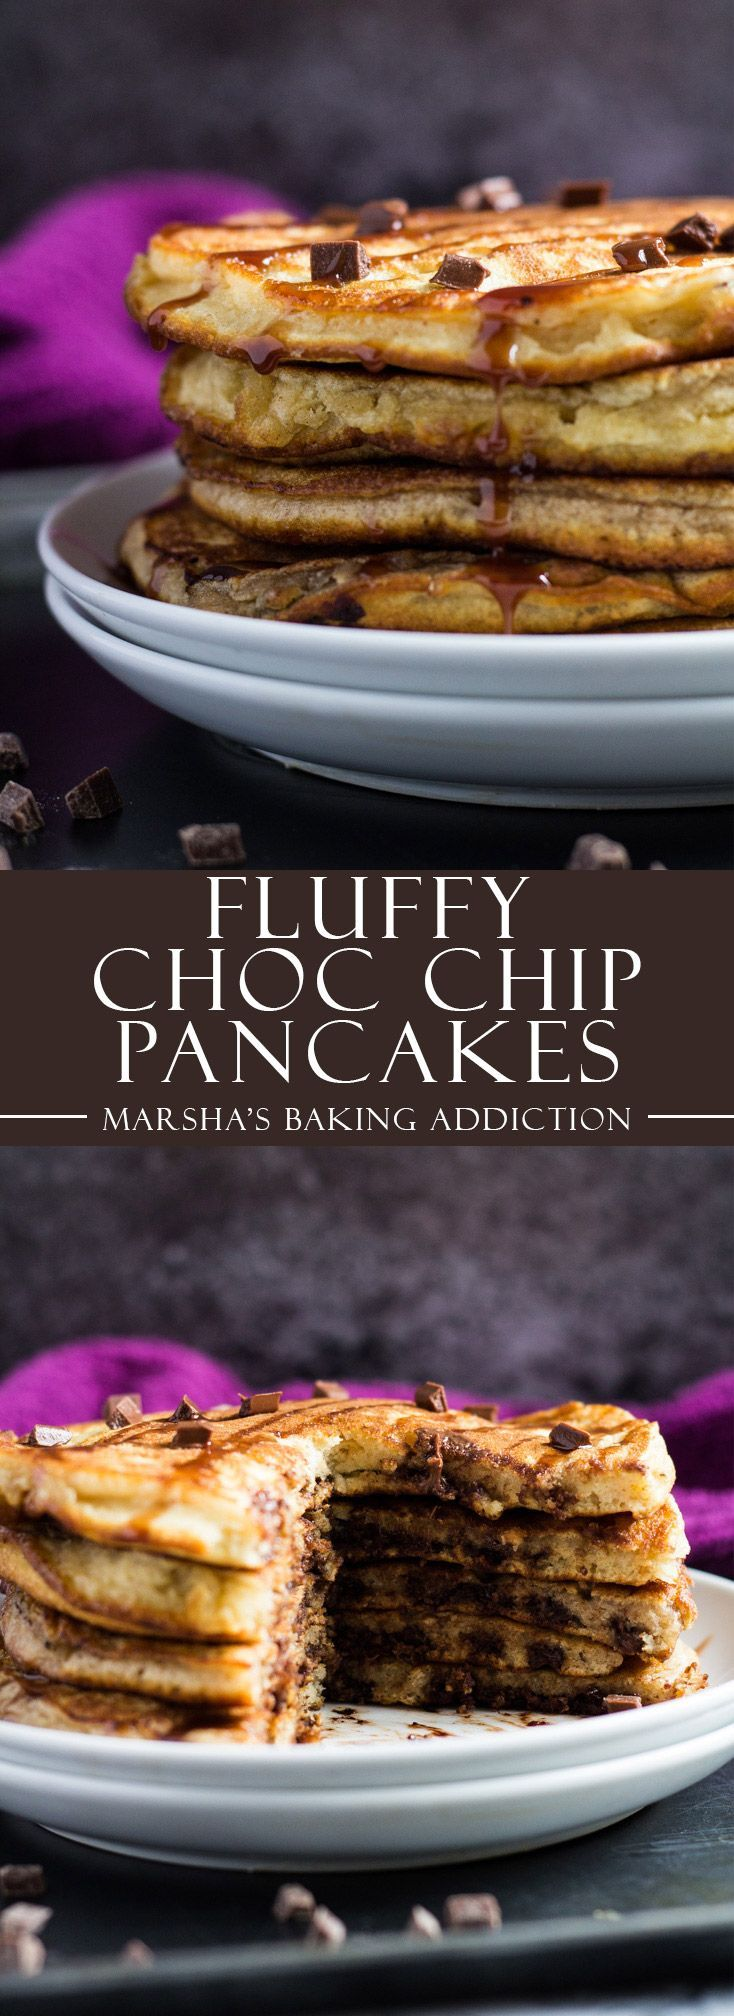 Fluffy Chocolate Chip Pancakes | http://marshasbakingaddiction.com /marshasbakeblog/